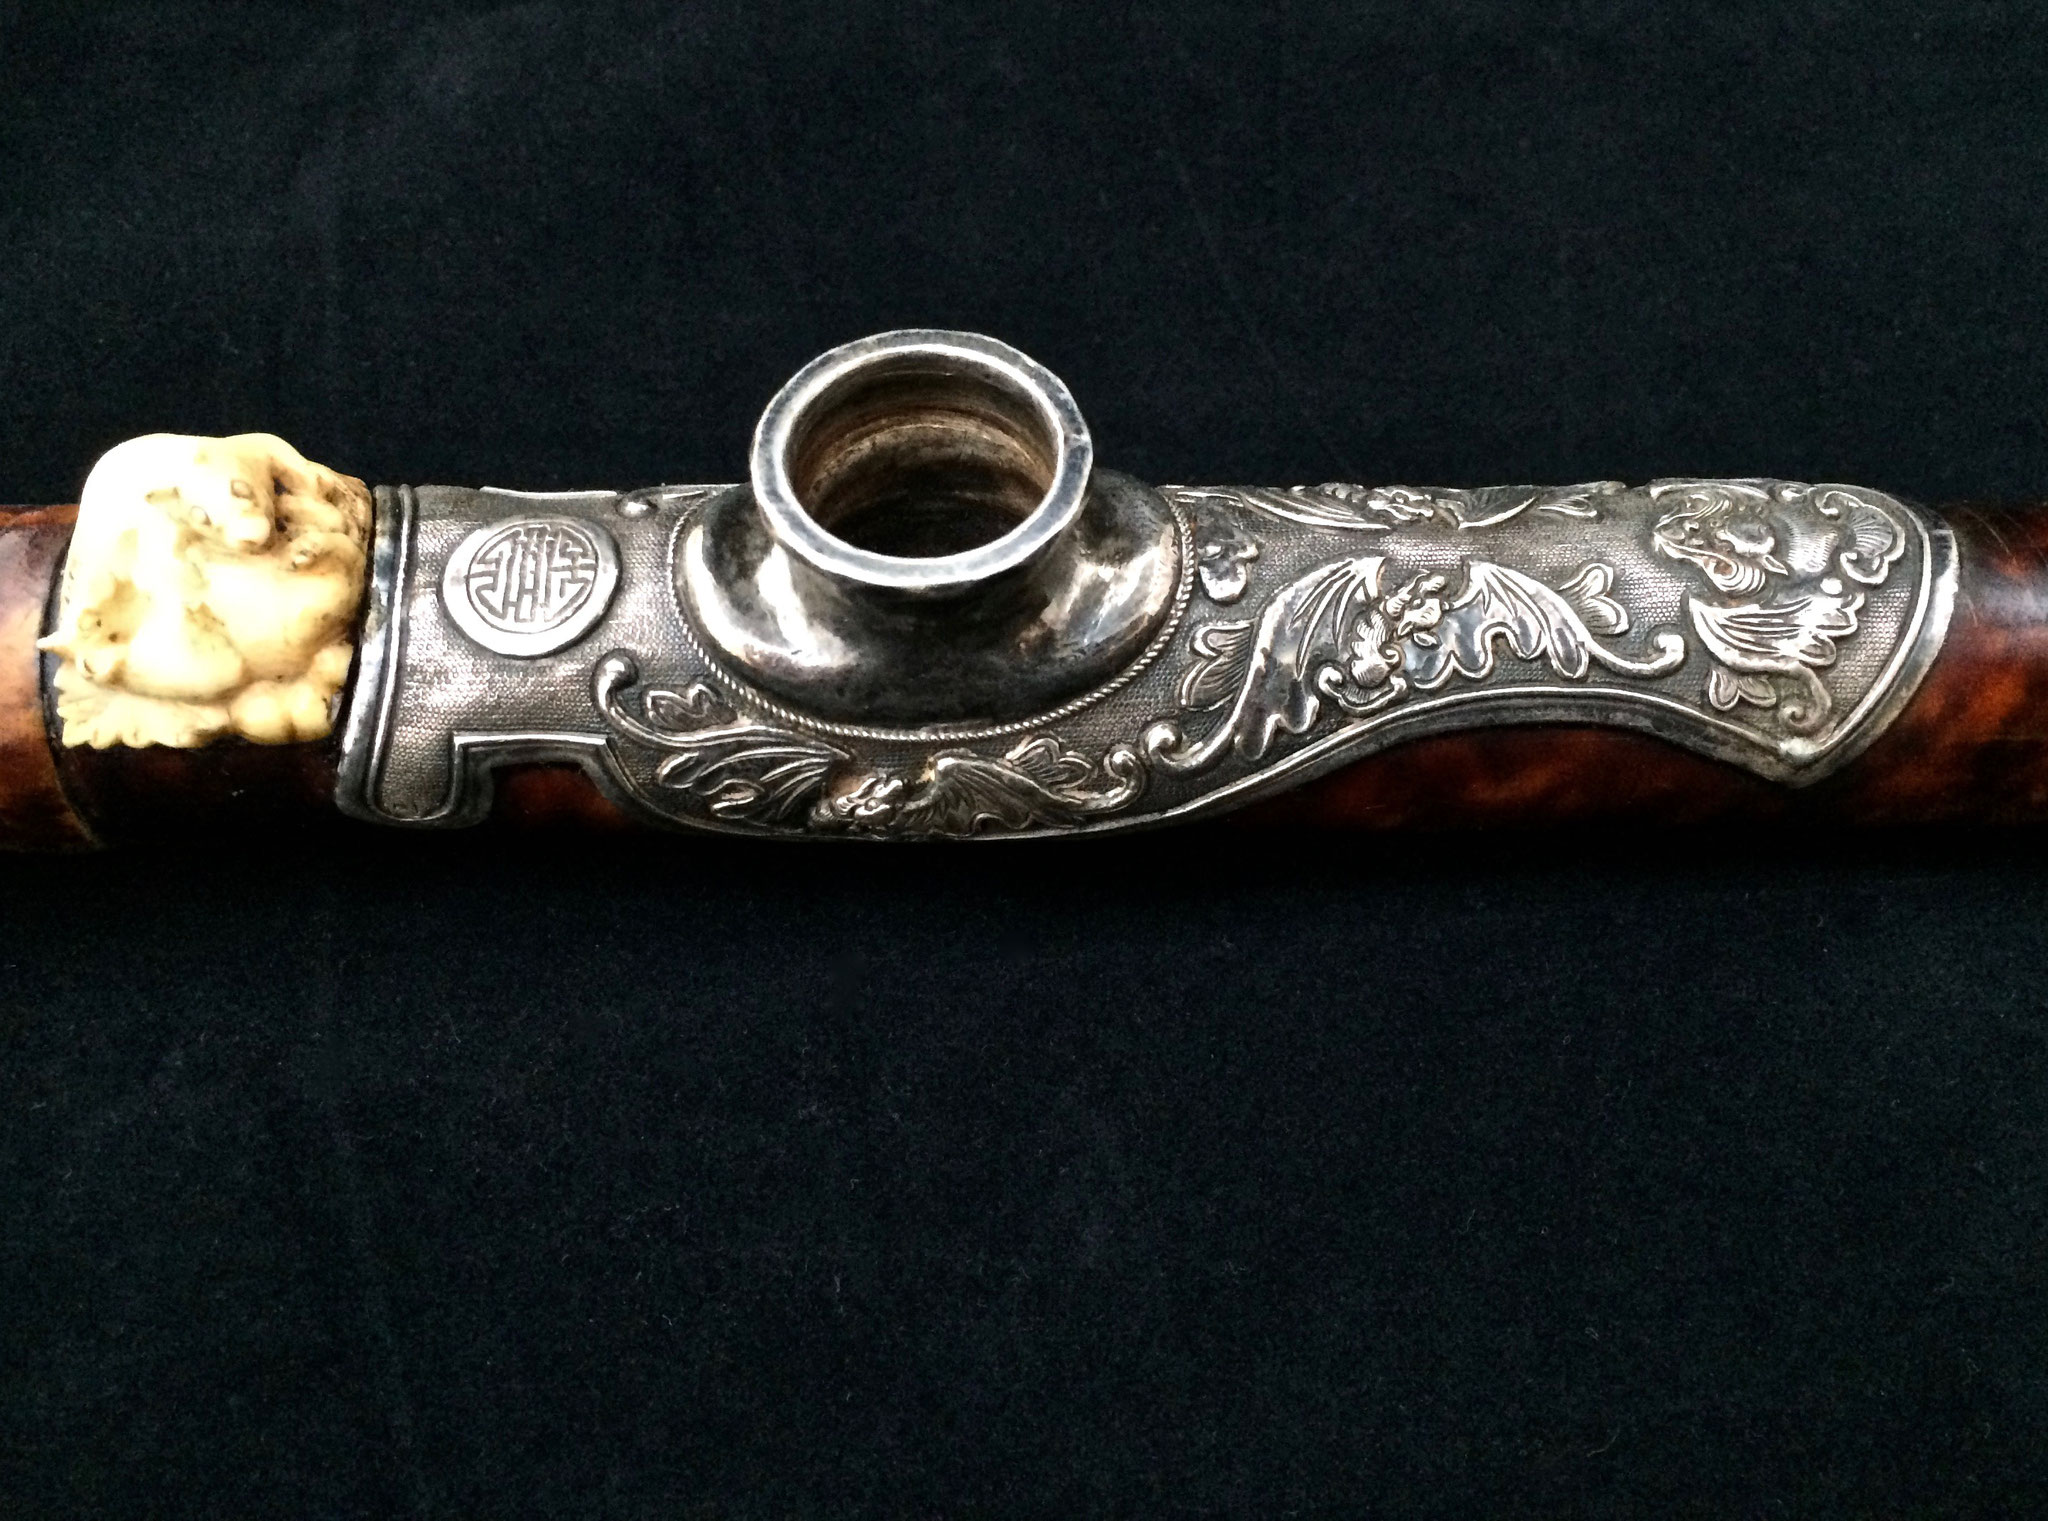 Selle en argent sur pipe en écaille (–> Pipes)